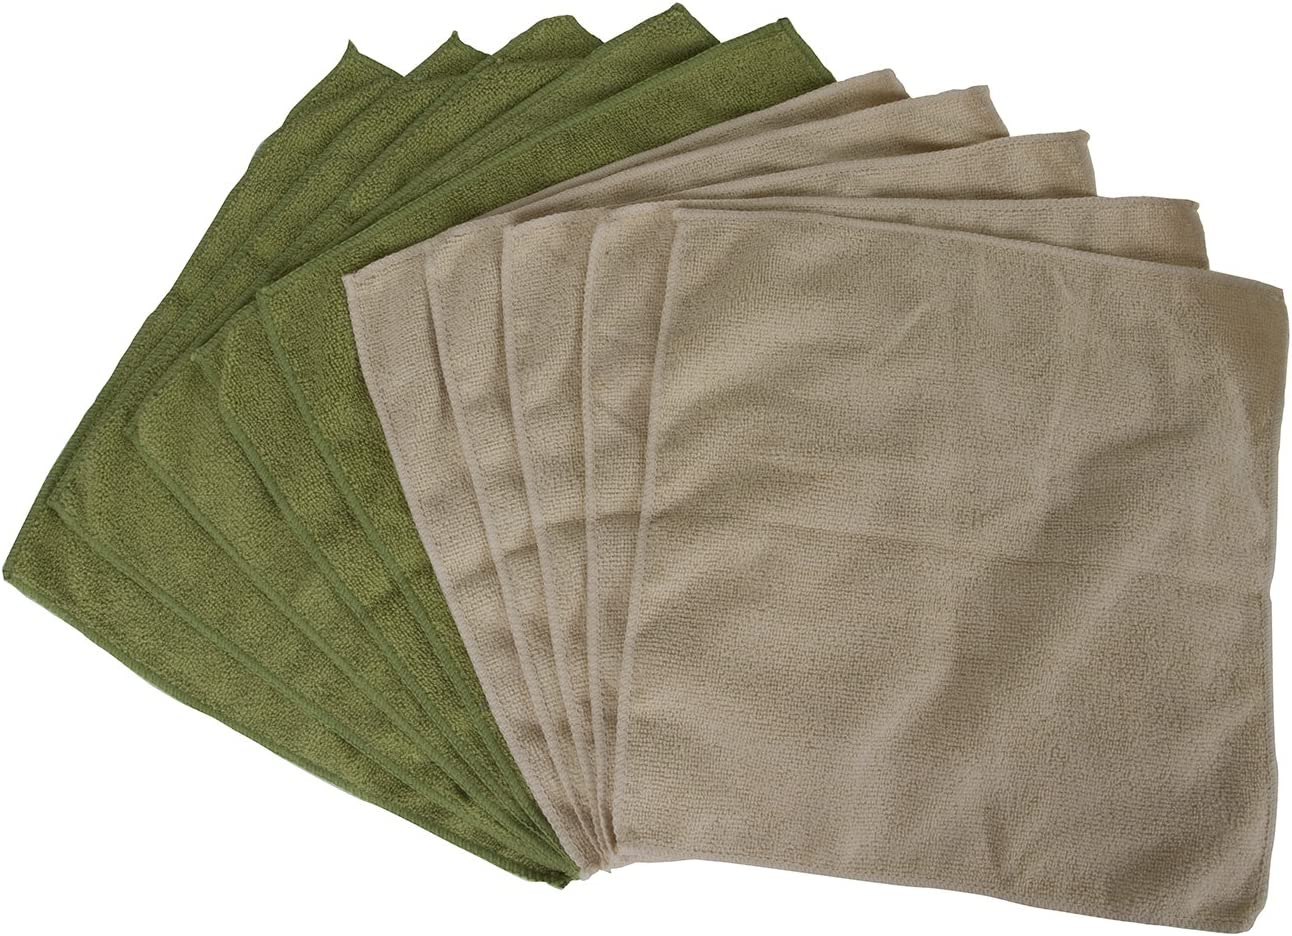 Evriholder Bamboo Naturals Greenery Collection Microfiber Towels, Lint Free Cleaning Cloths, Green & Tan, Pack of 10